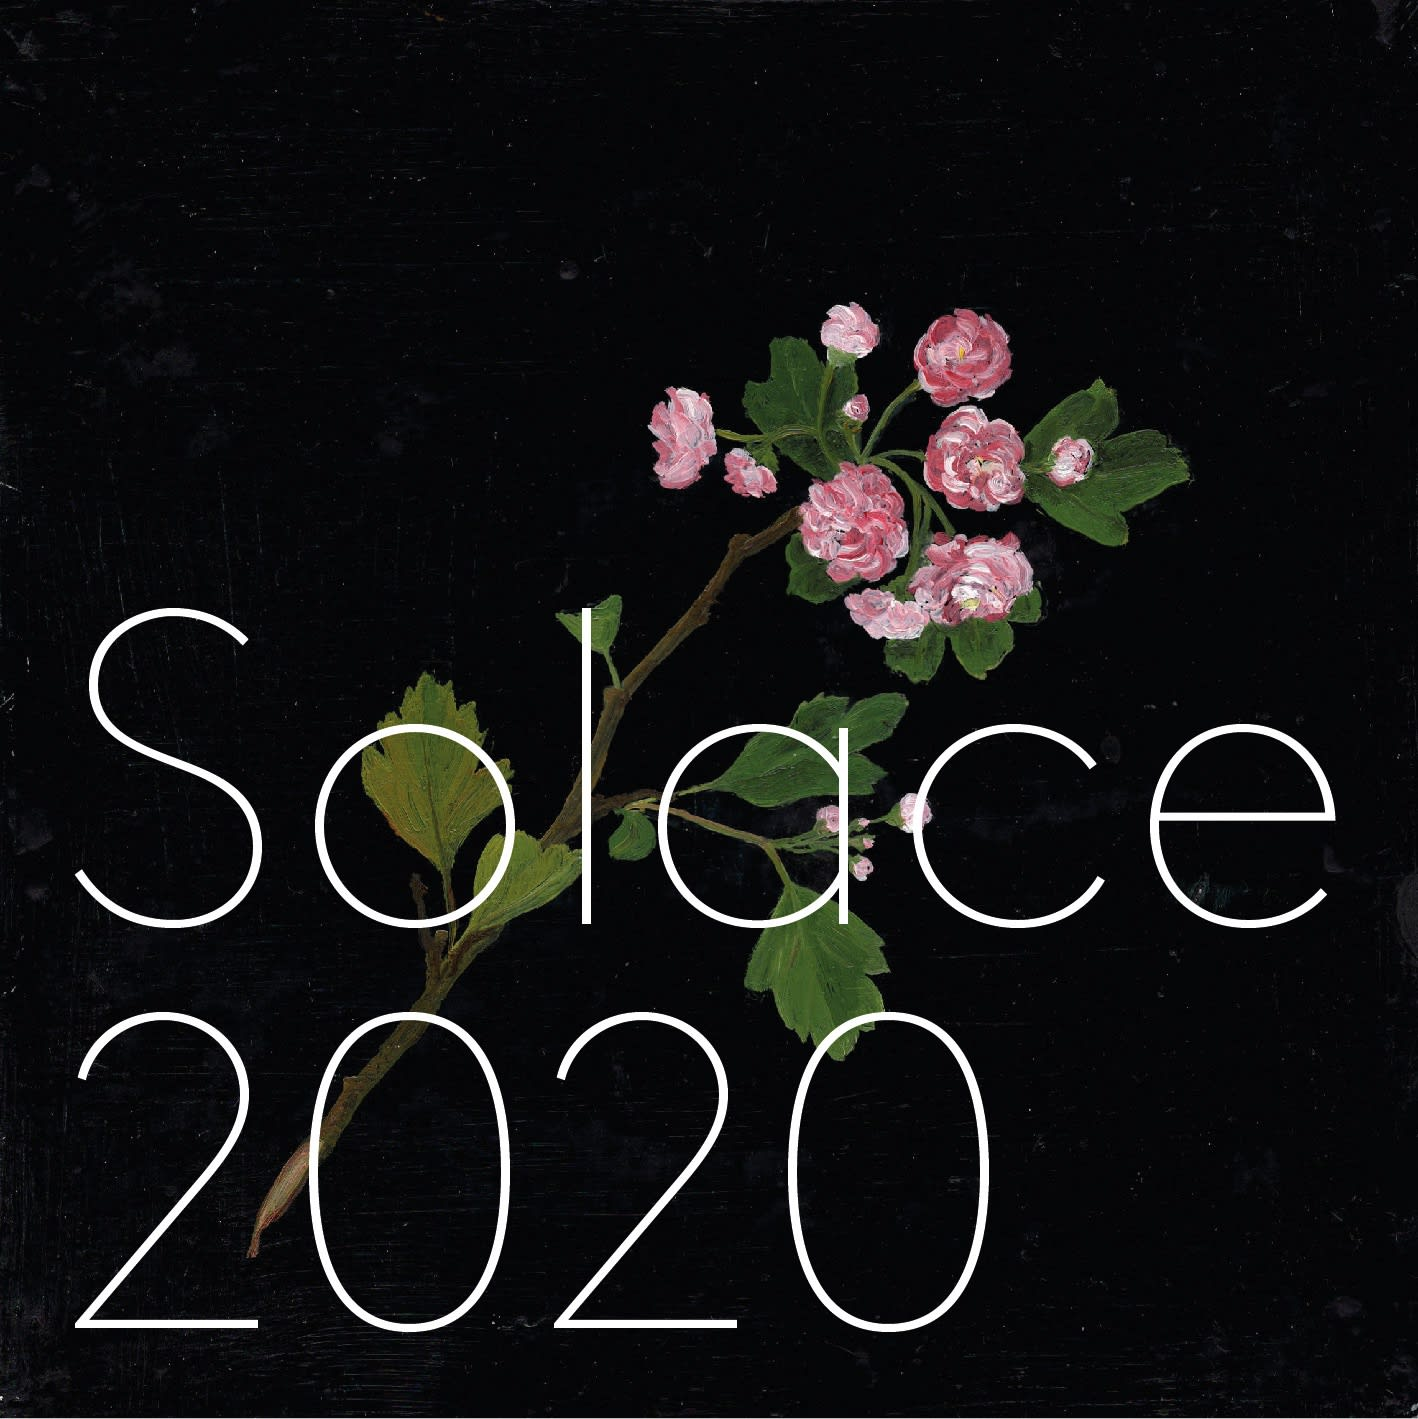 Solace 2020